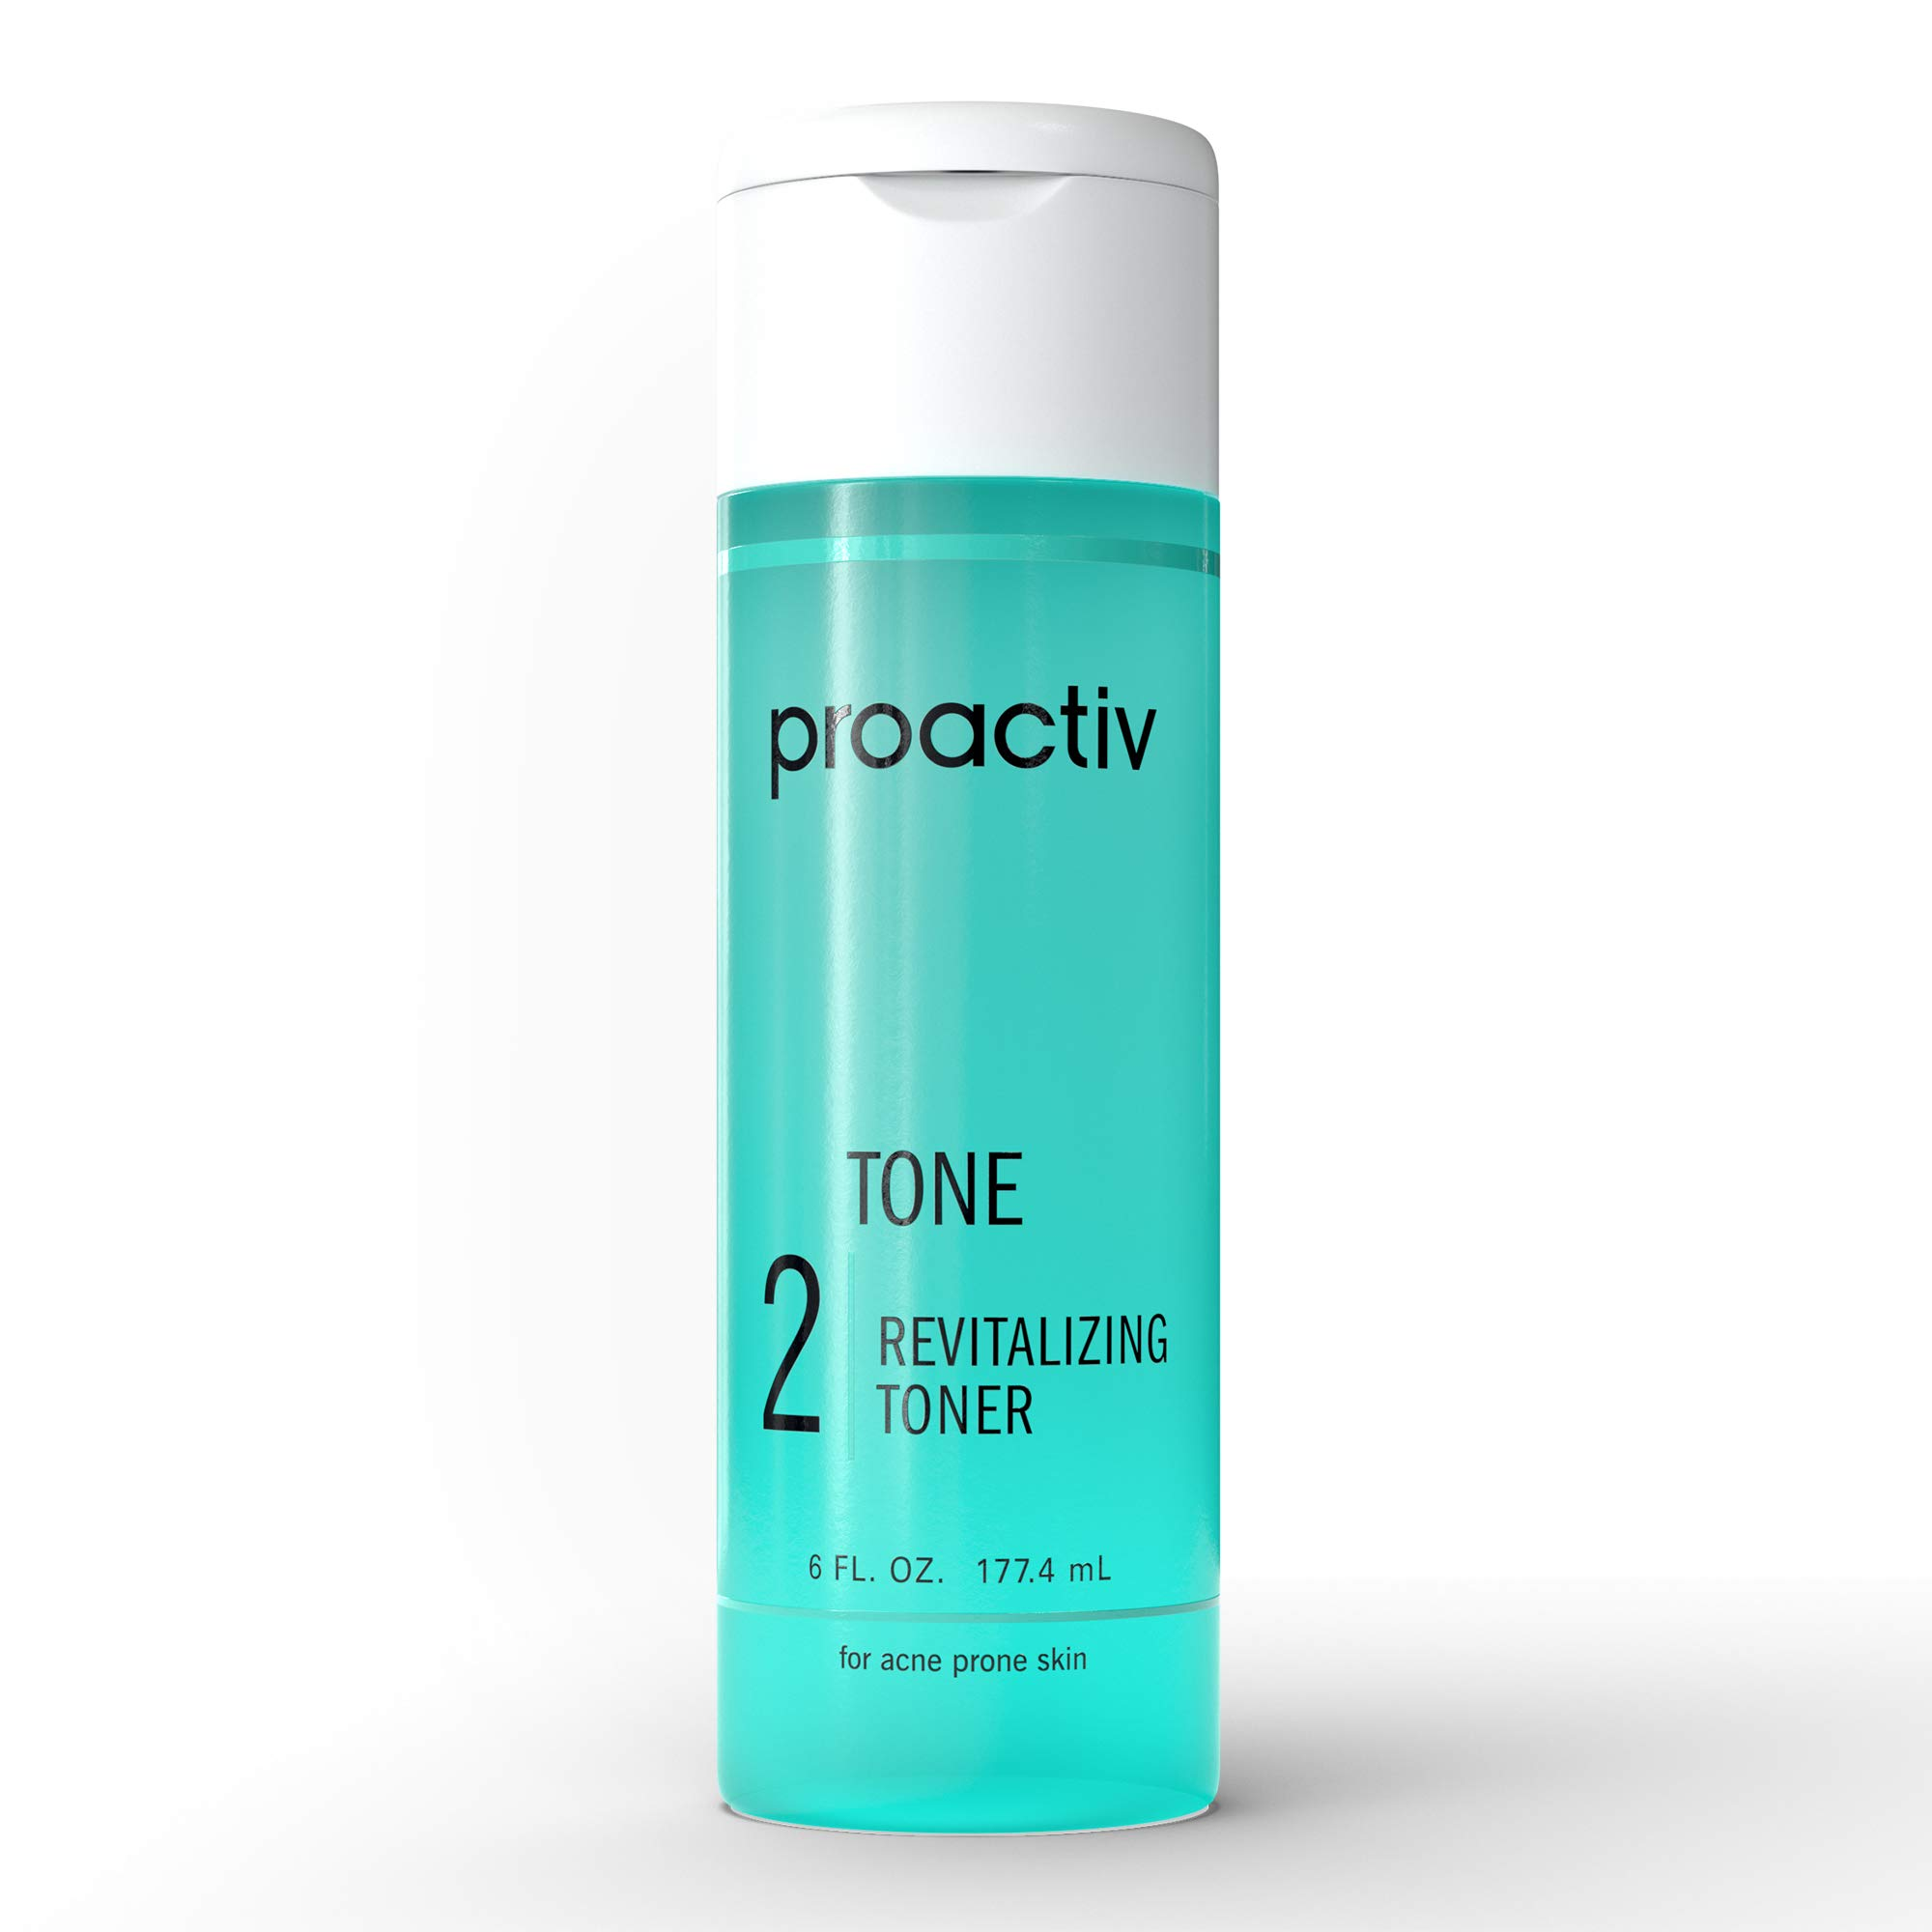 Proactiv Hydrating Facial Toner For Sensitive Skin - Alochol Free Toner For Face Care - Pore Tightening Glycolic Acid and Witch Hazel Formula - Acne Toner To Balance Skin And Remove Impurities, 6 oz.